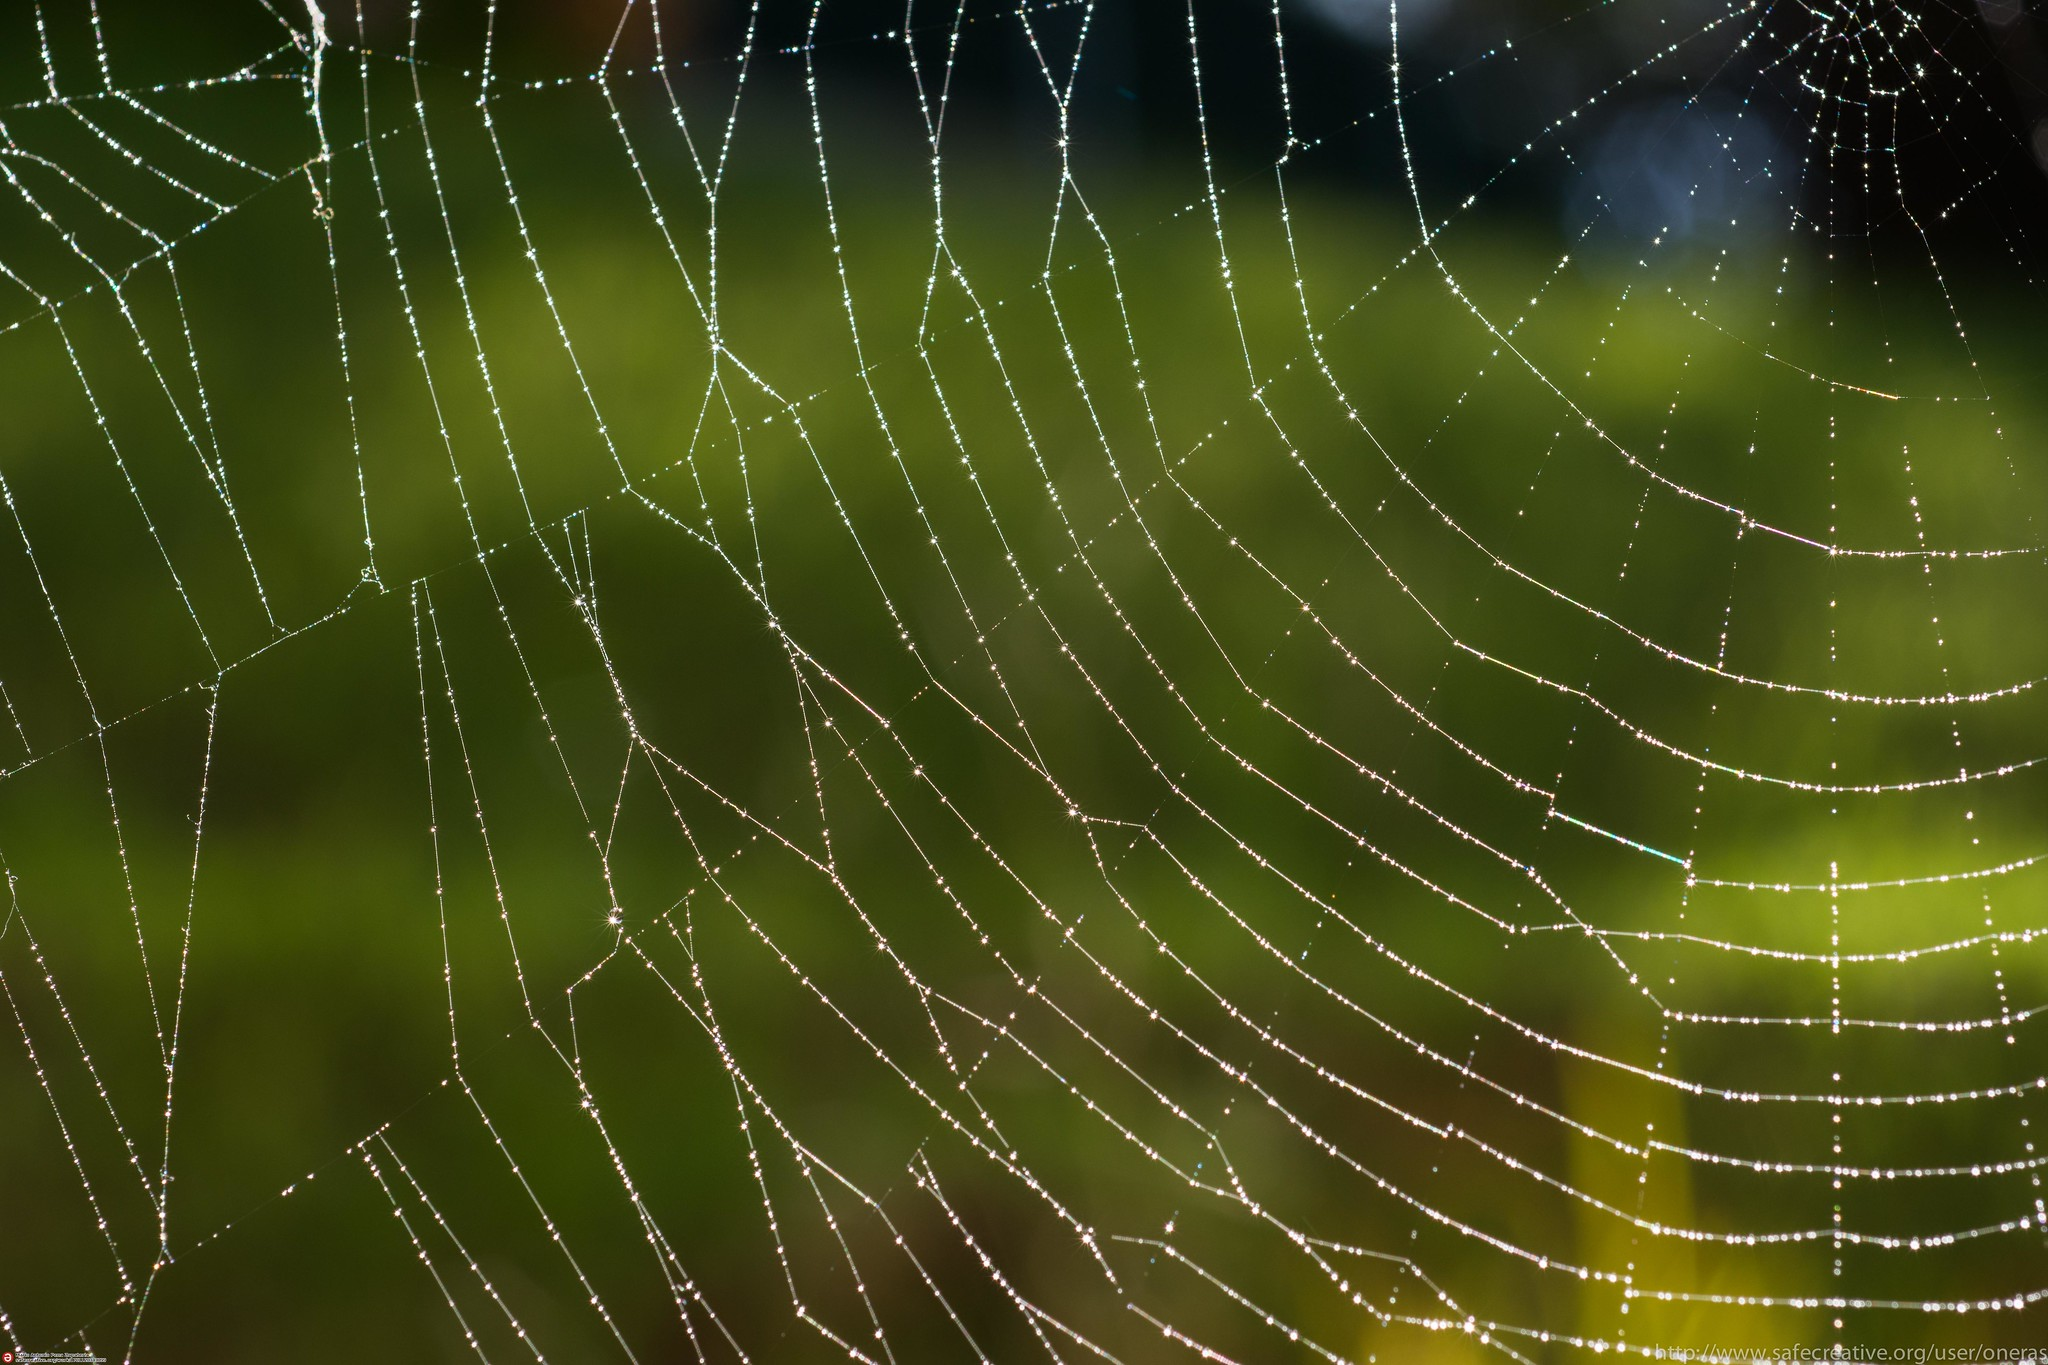 A spiderweb beaded with dew